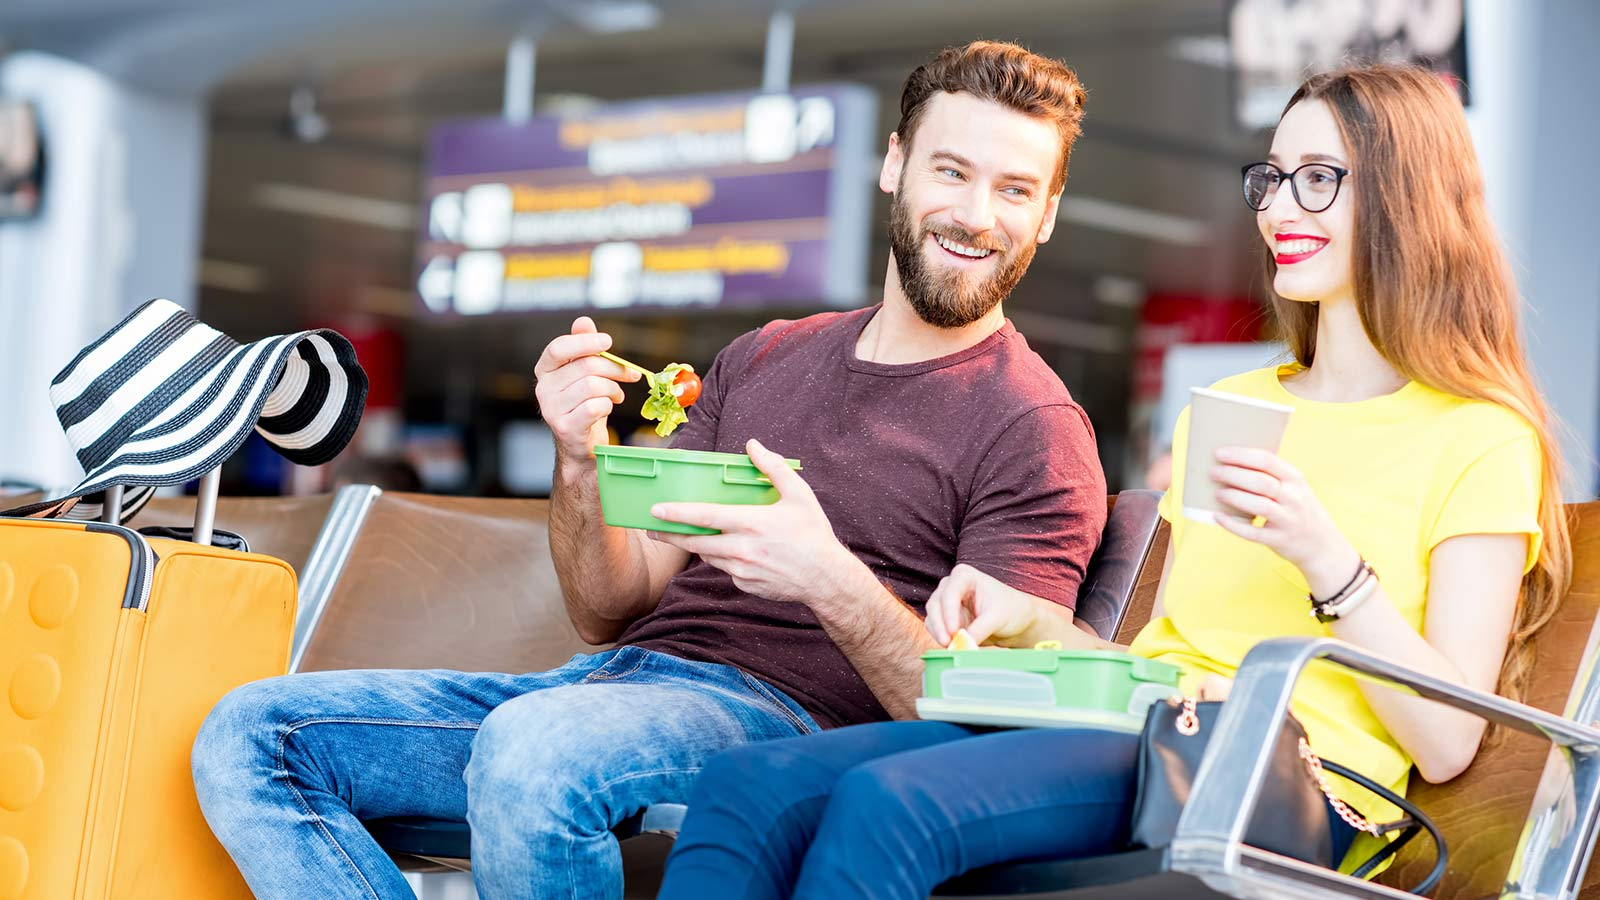 Couple eating salad in airport terminal